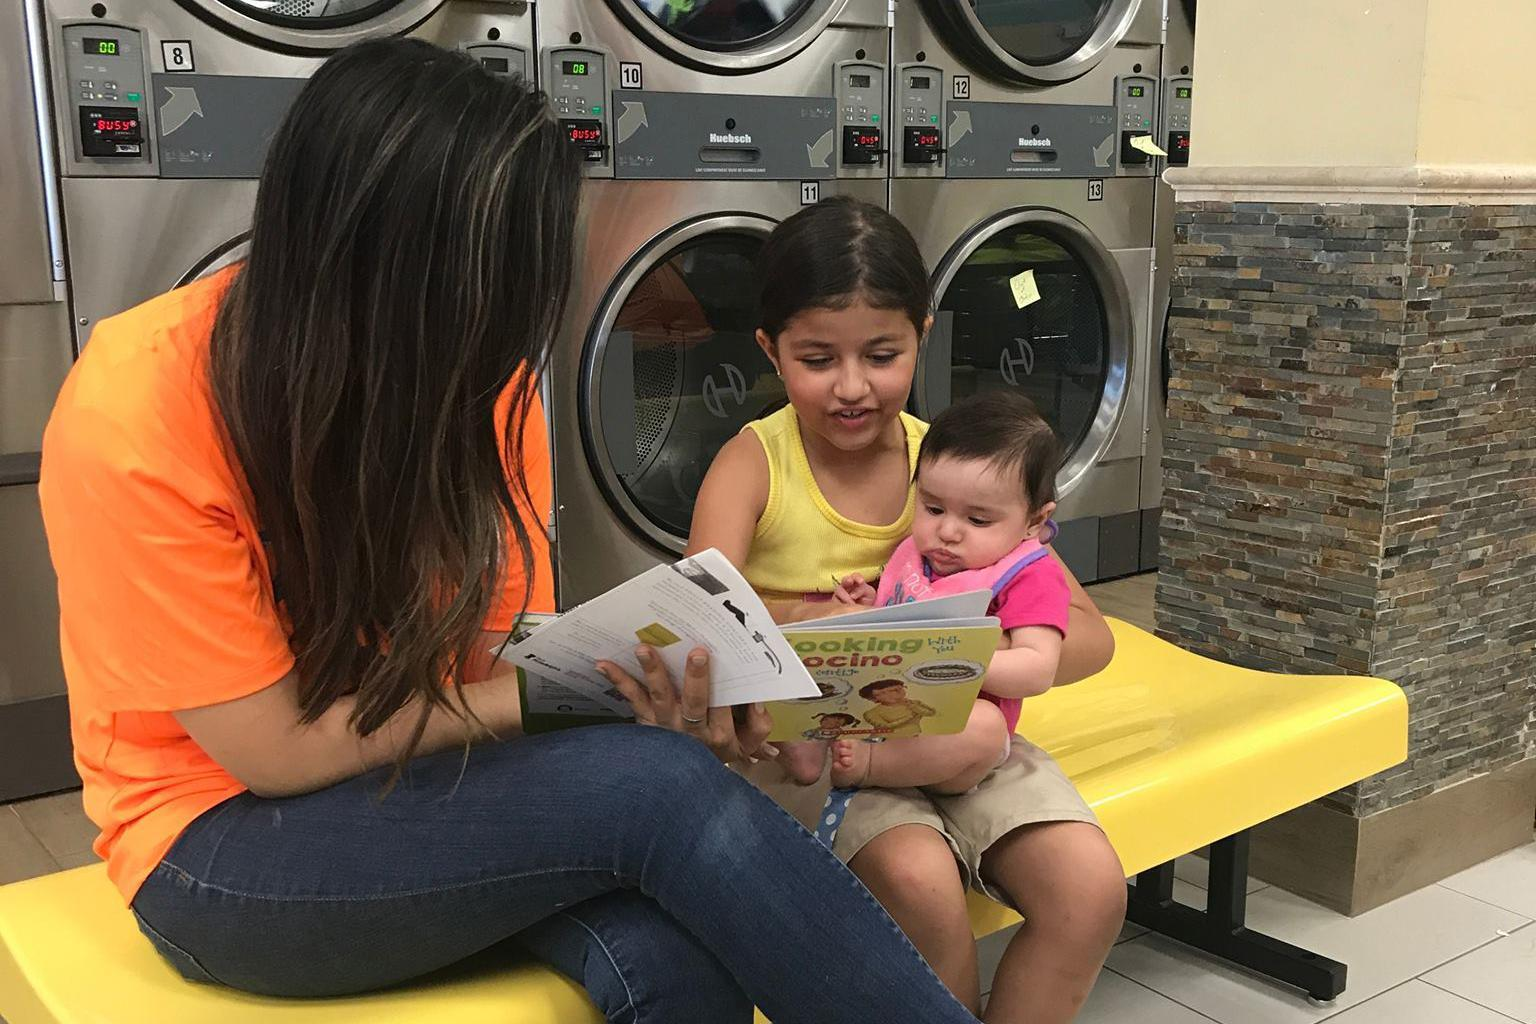 A family reads together at a laundromat